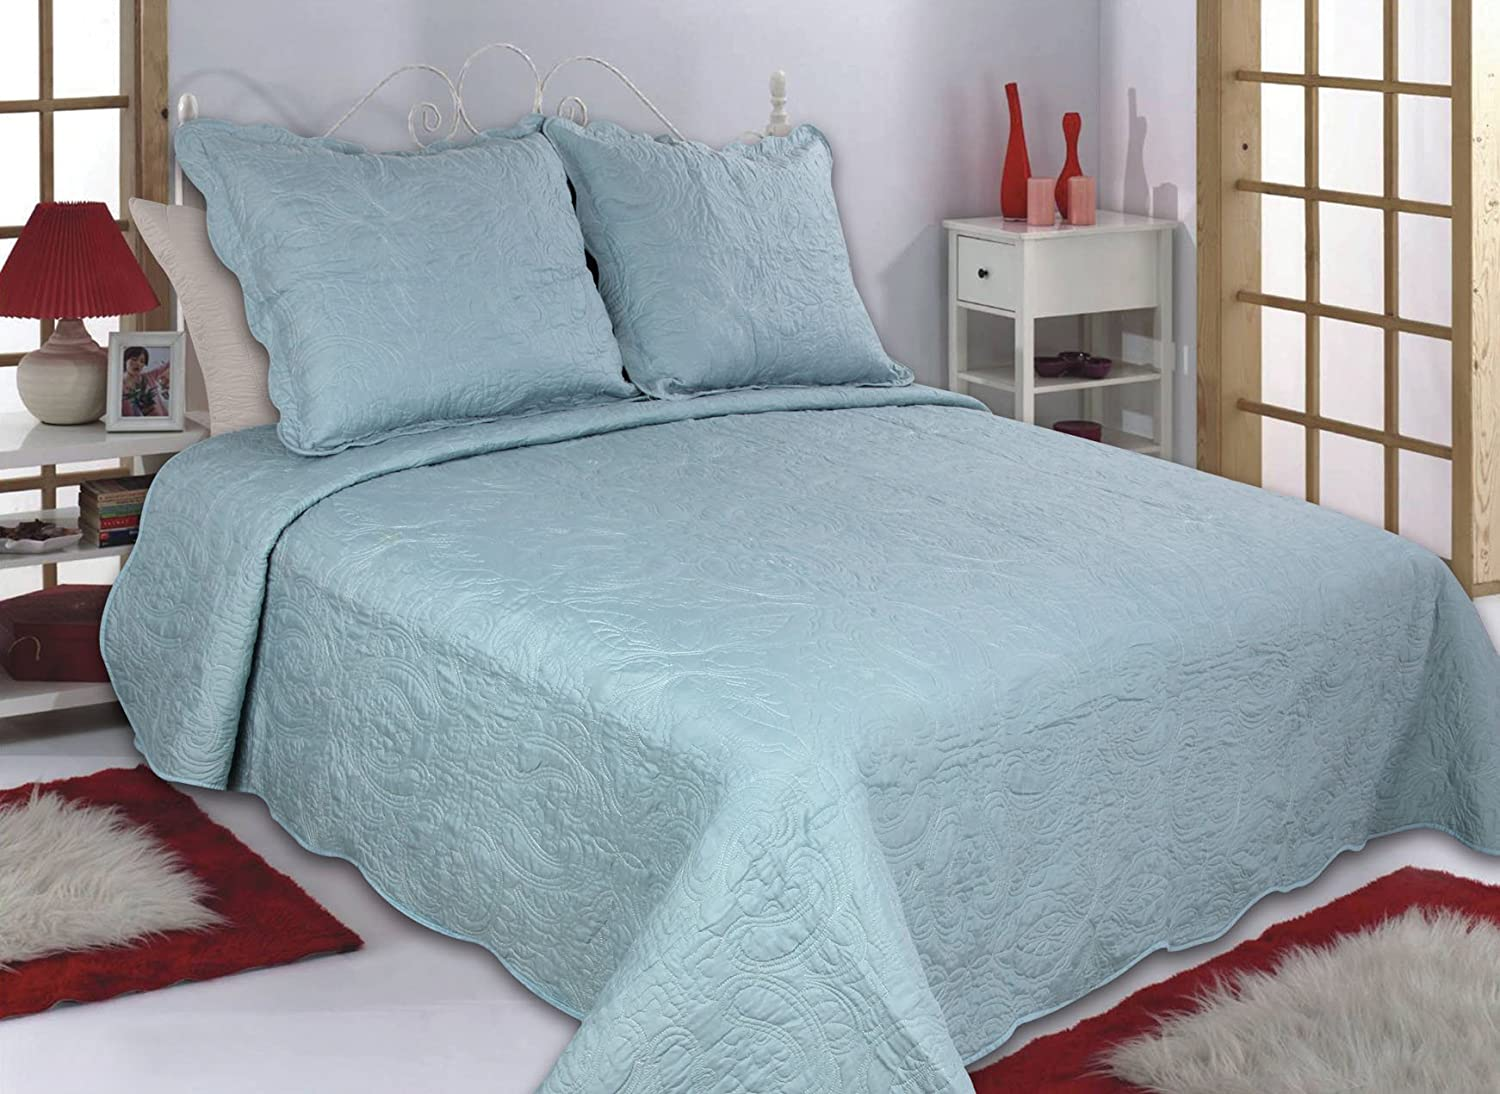 All For You 3Pc Reversible Quilt Set-Full/Queen Size-Aqua